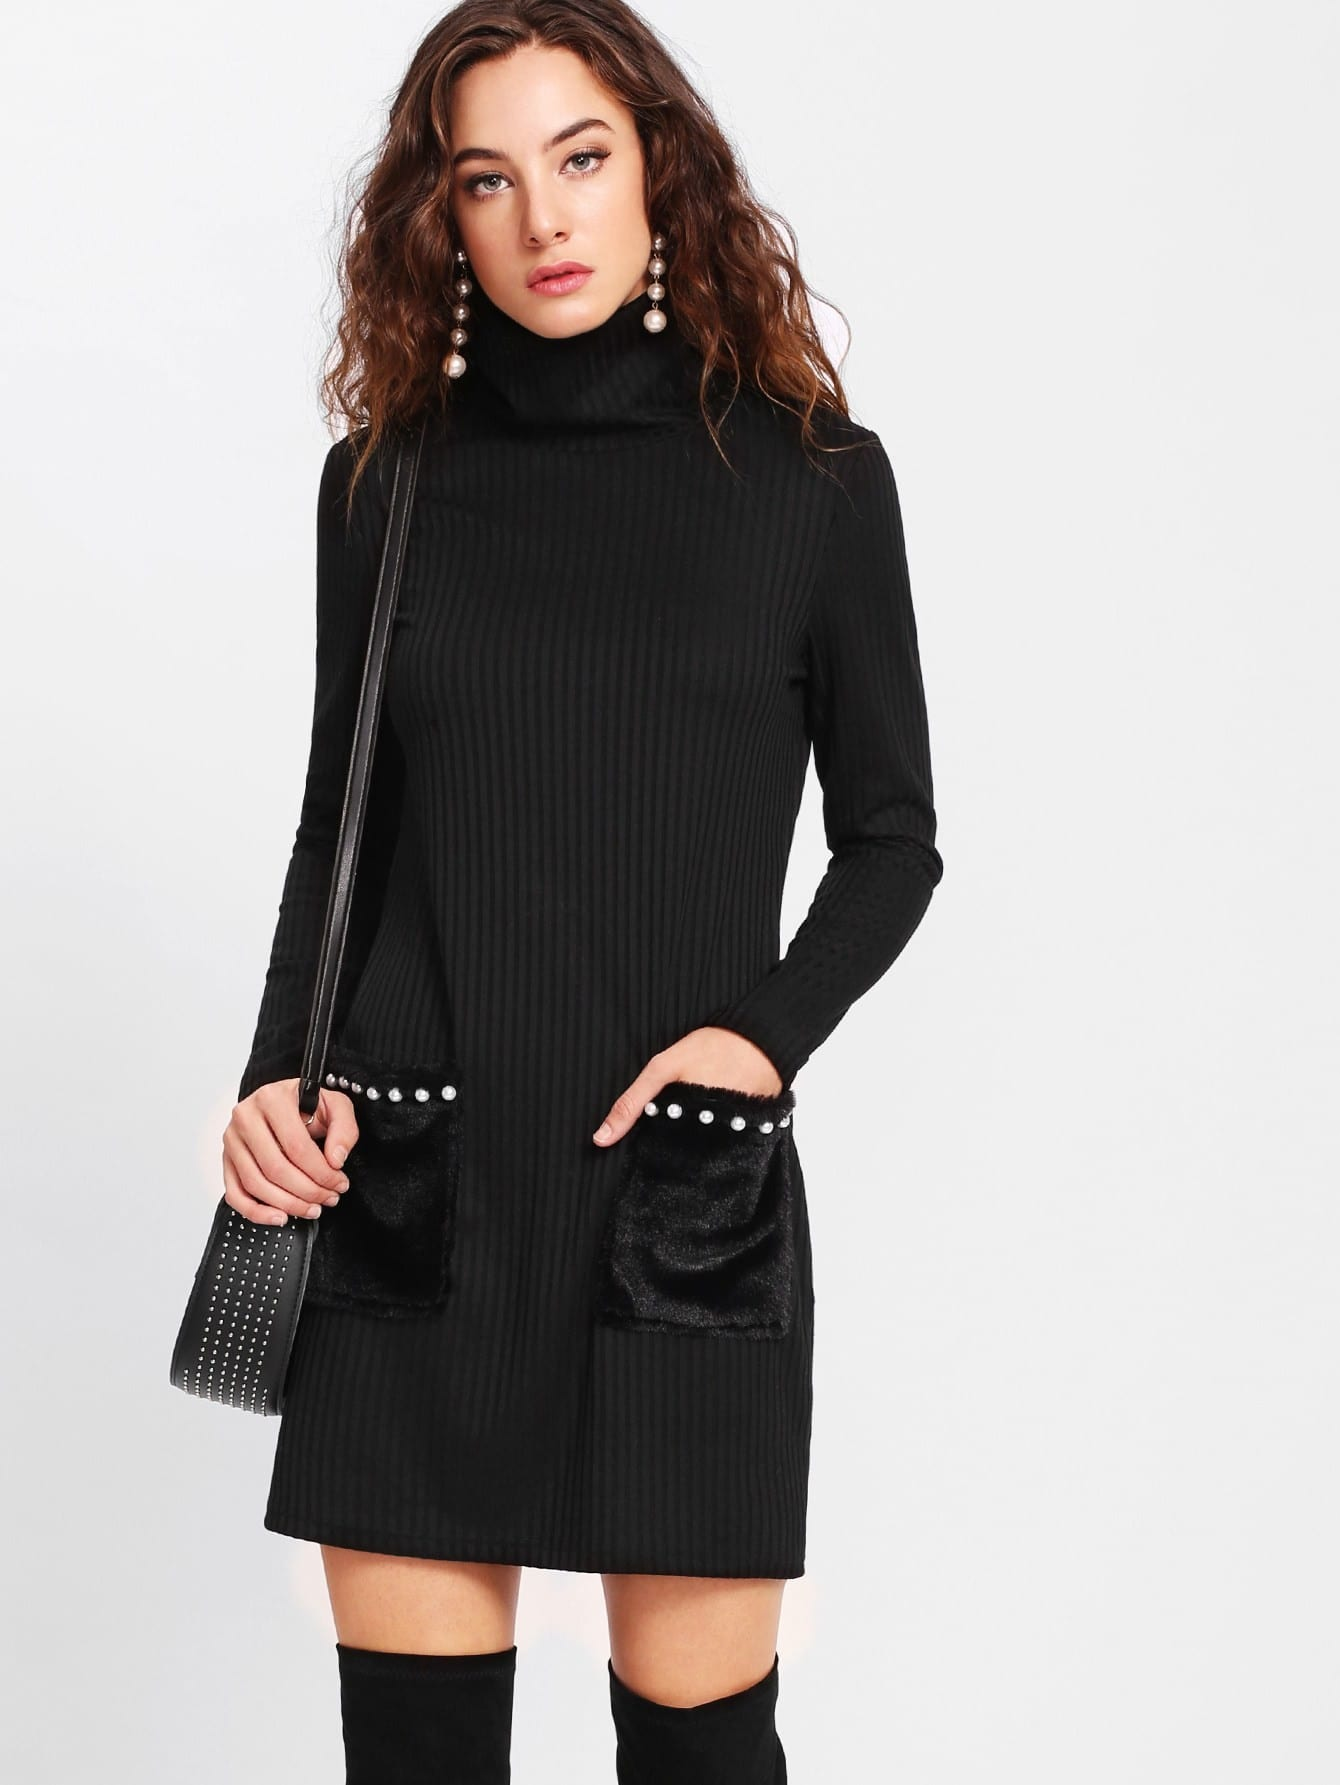 Pearl Beading Faux Fur Pocket Ribbed Dress lisa corti короткое платье